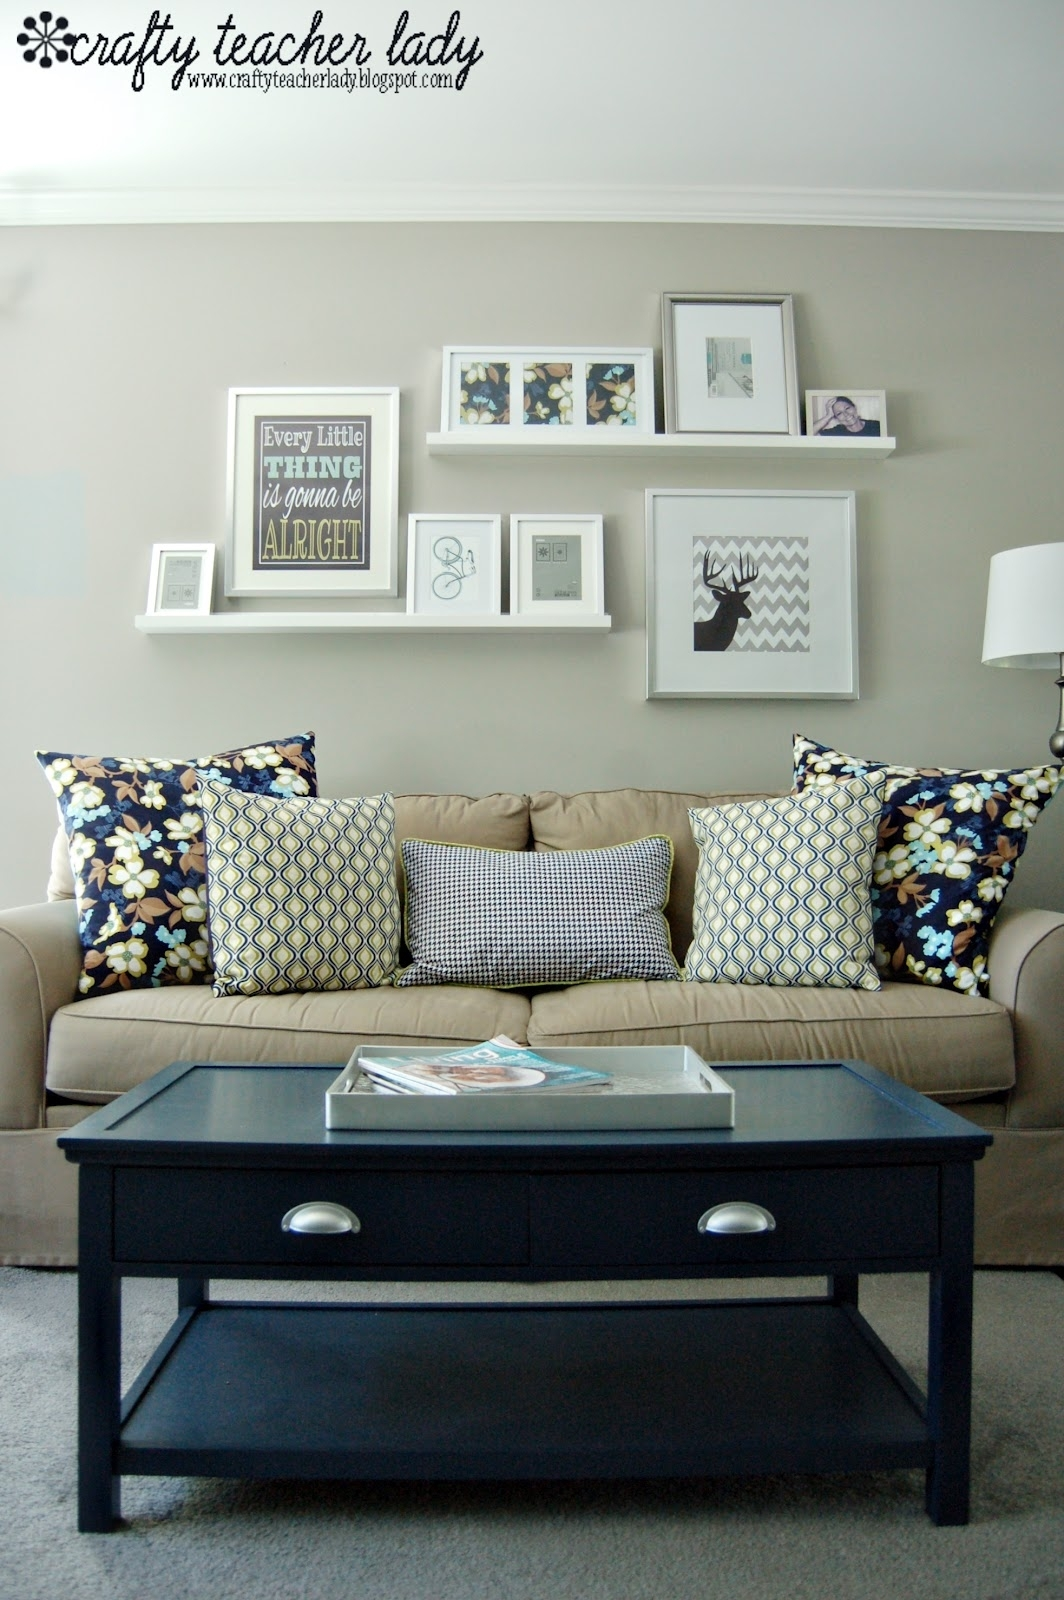 Diy - Coffee Table Makeover Using Starless Nightbehr Ultra pertaining to Current Wall Accents Behind Tv Or Couch